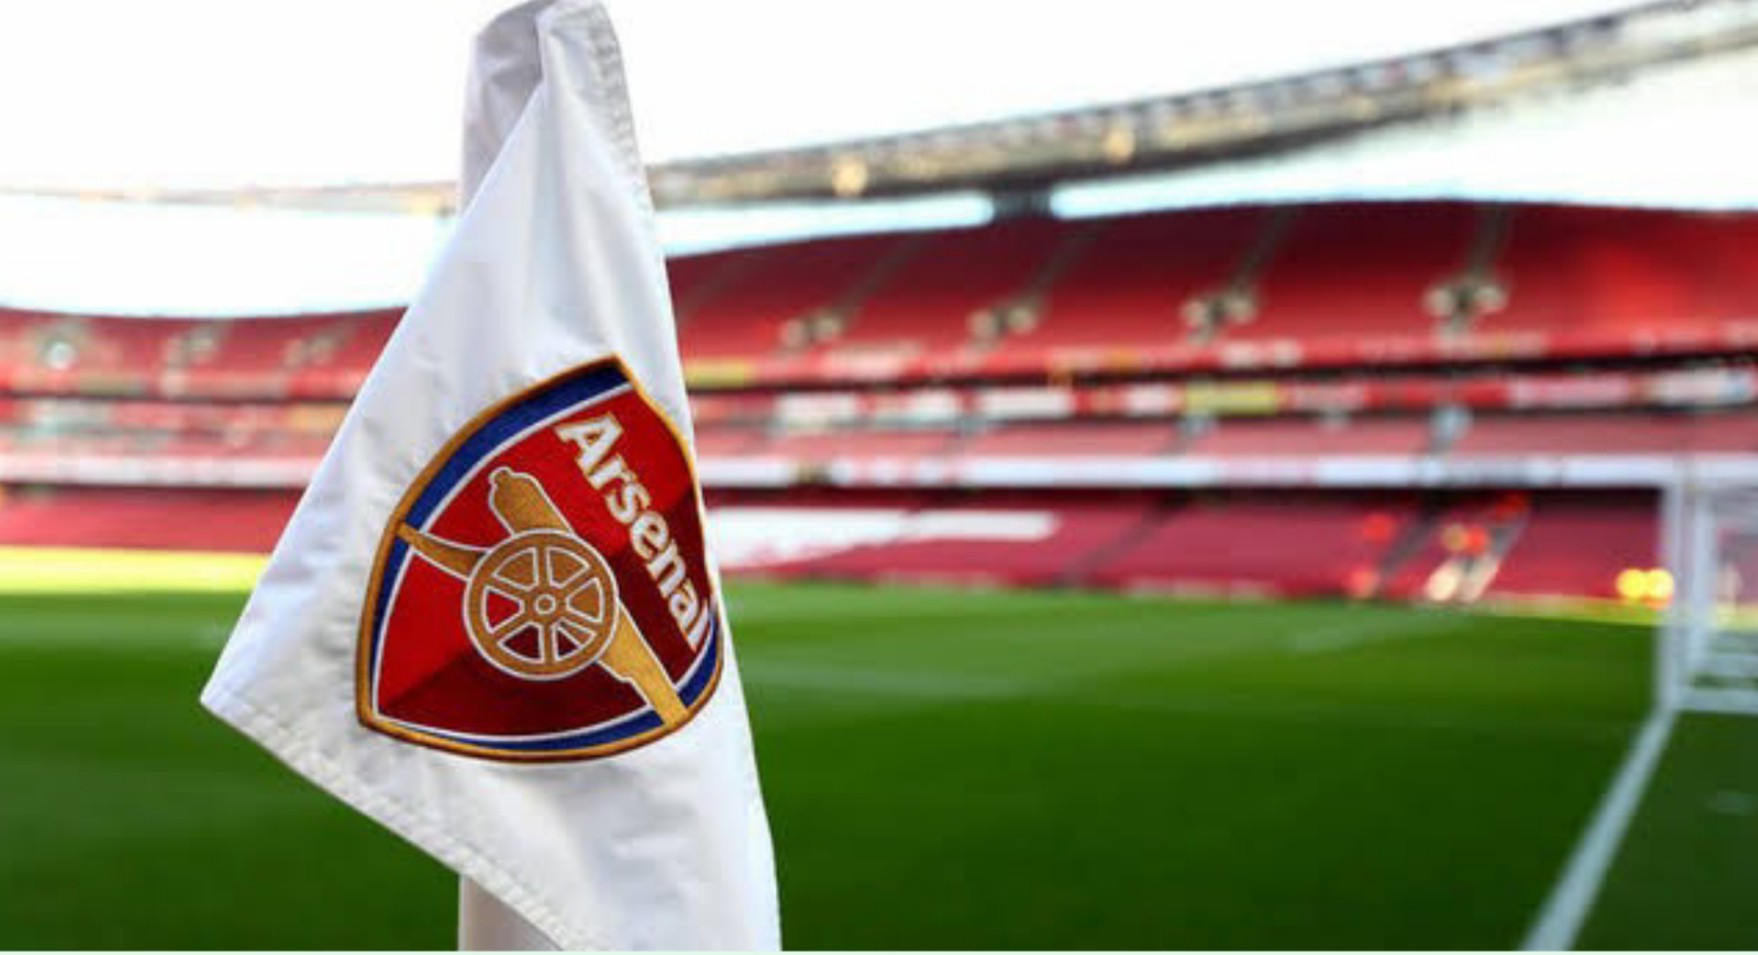 Arsenal Announces 55-Staff Layoff Plan To Reduce Cost As COVID-19 Hits Revenues